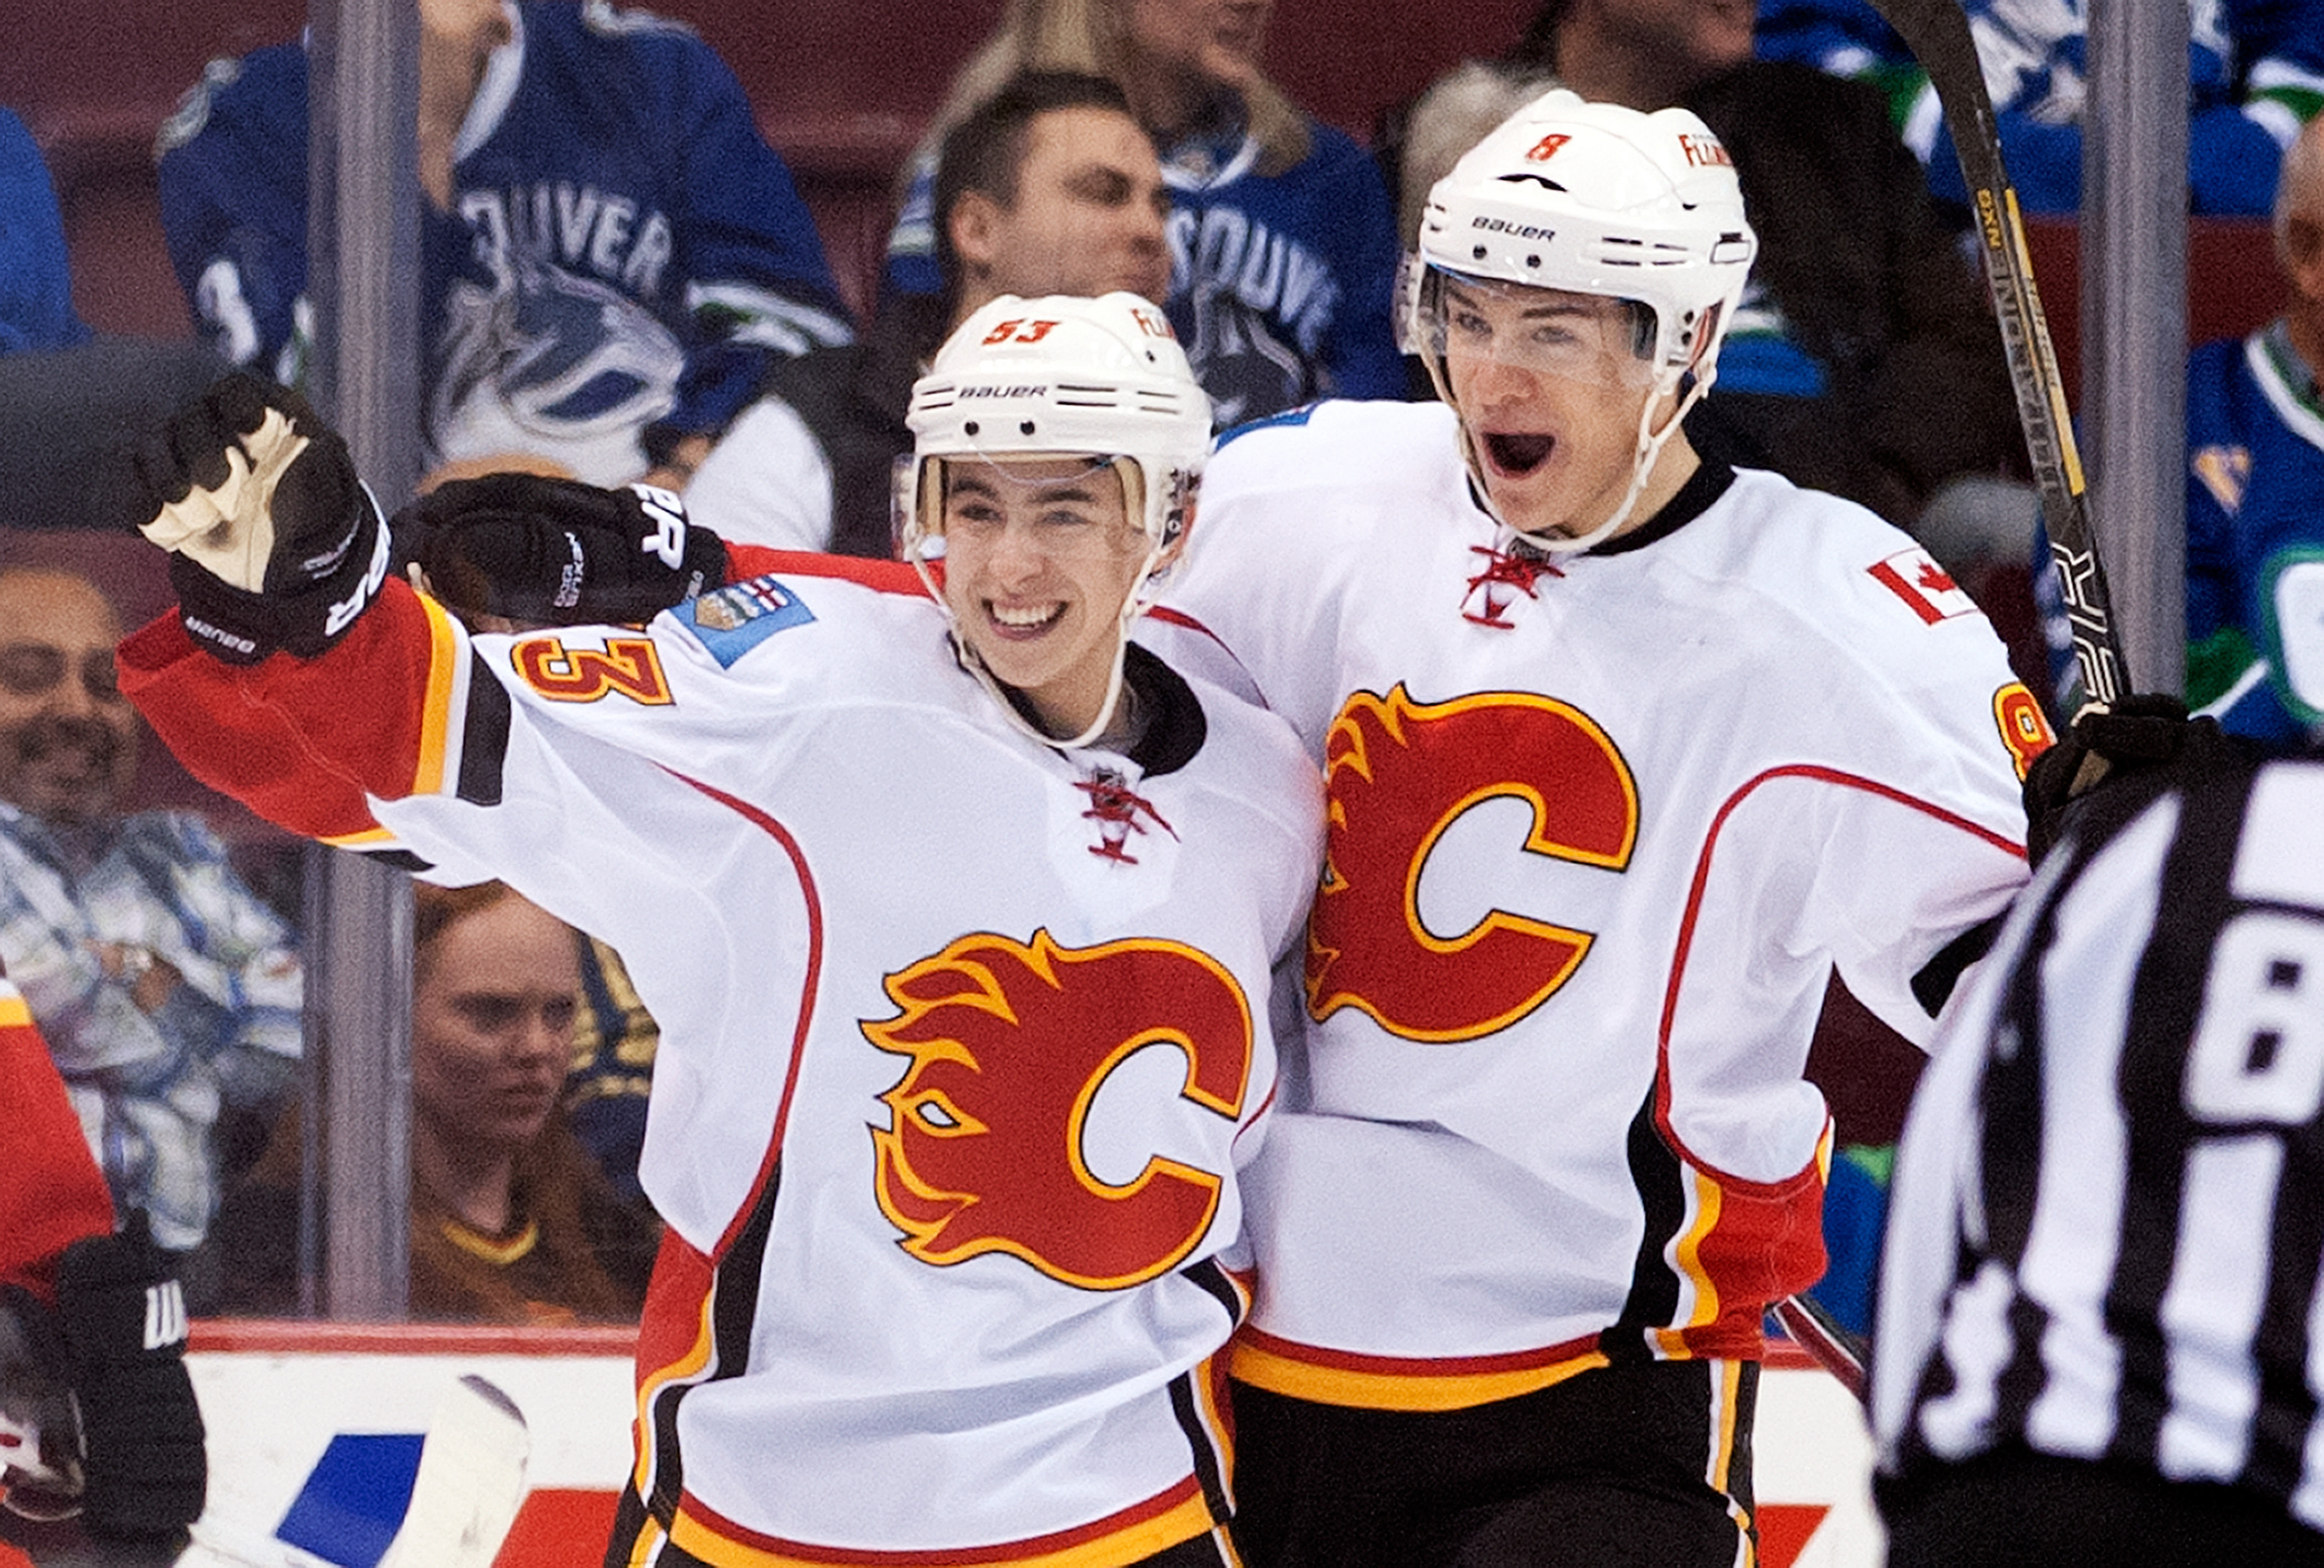 It wasn't a goal, but Johnny Gaudreau was the only Flame to score a point today.